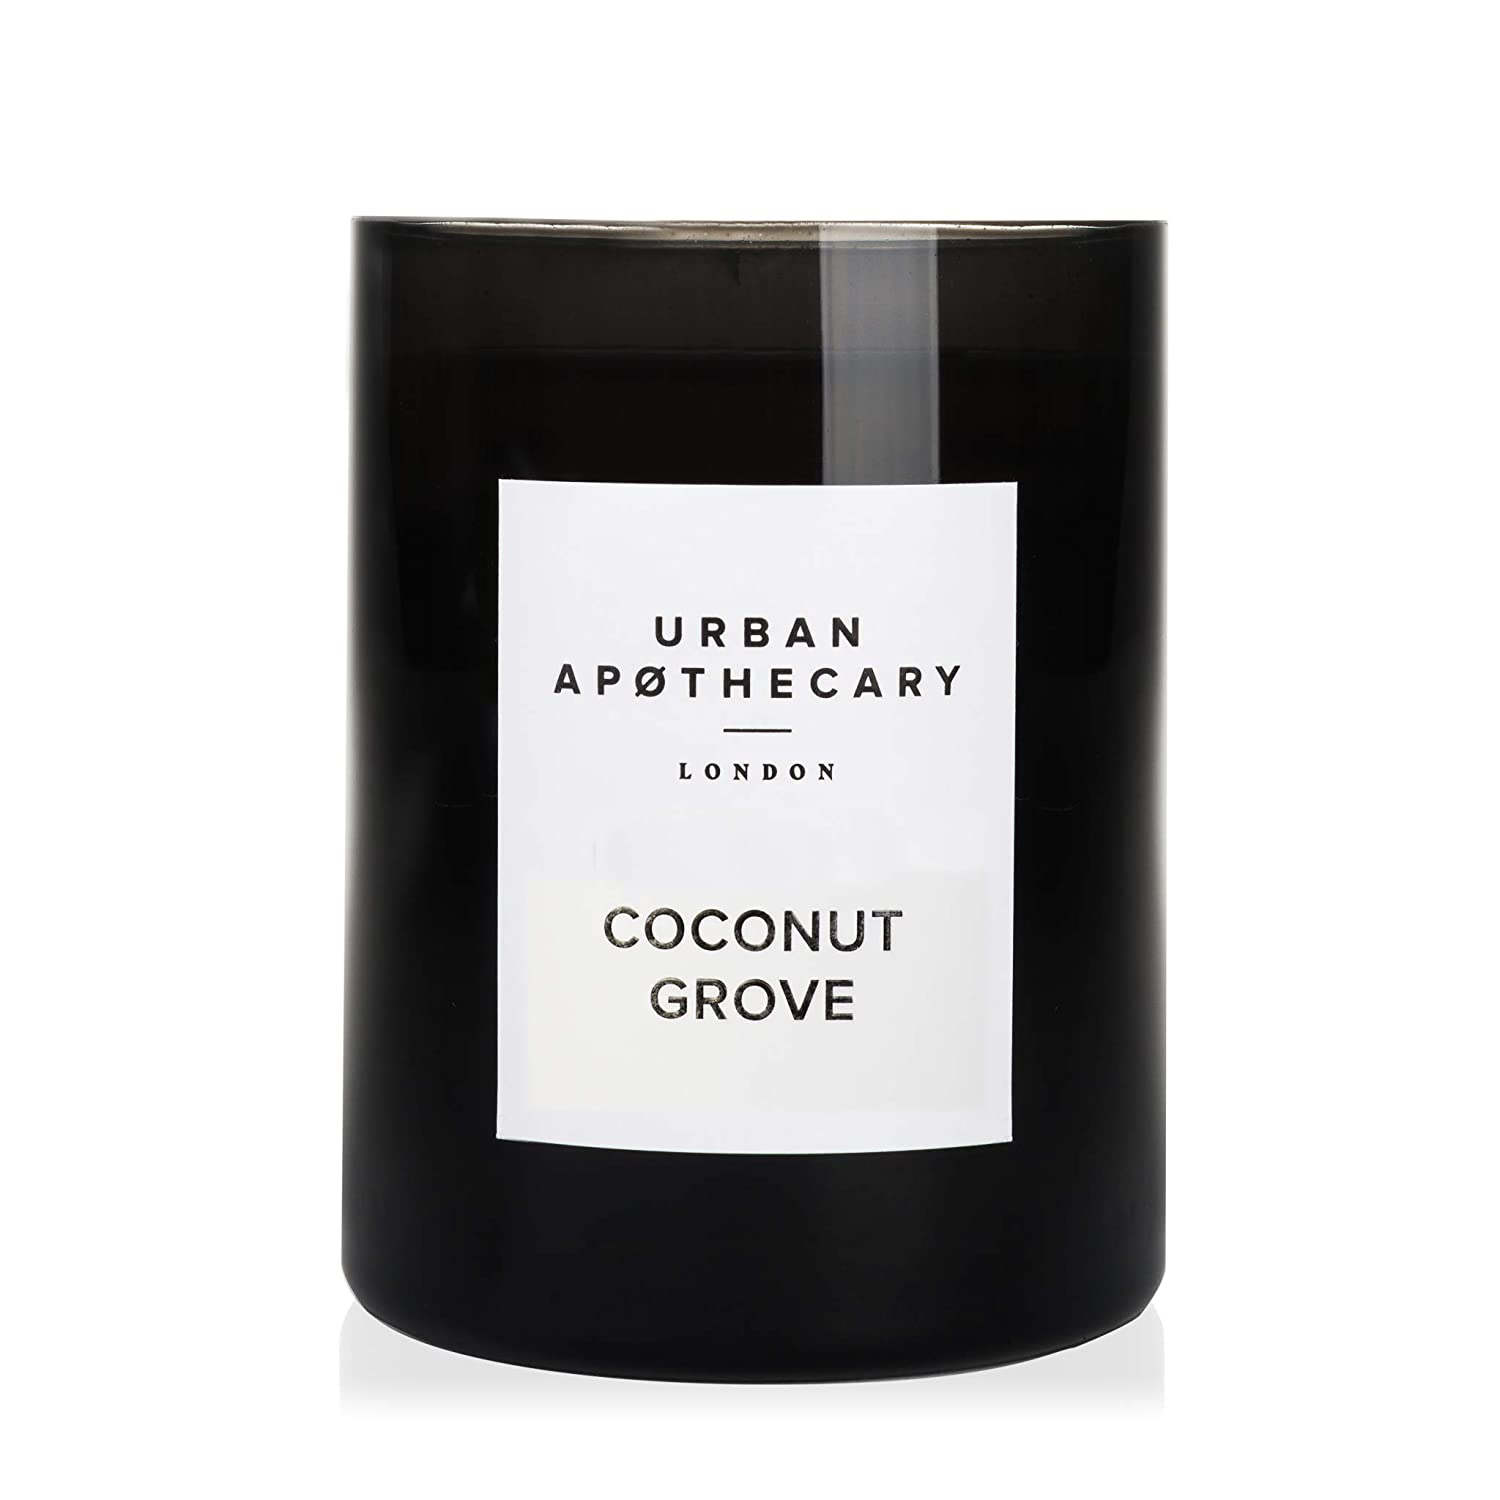 Urban Apothecary Coconut Grove Luxury Scented Candle 300 g Urban Apothecary London UALWCGC300